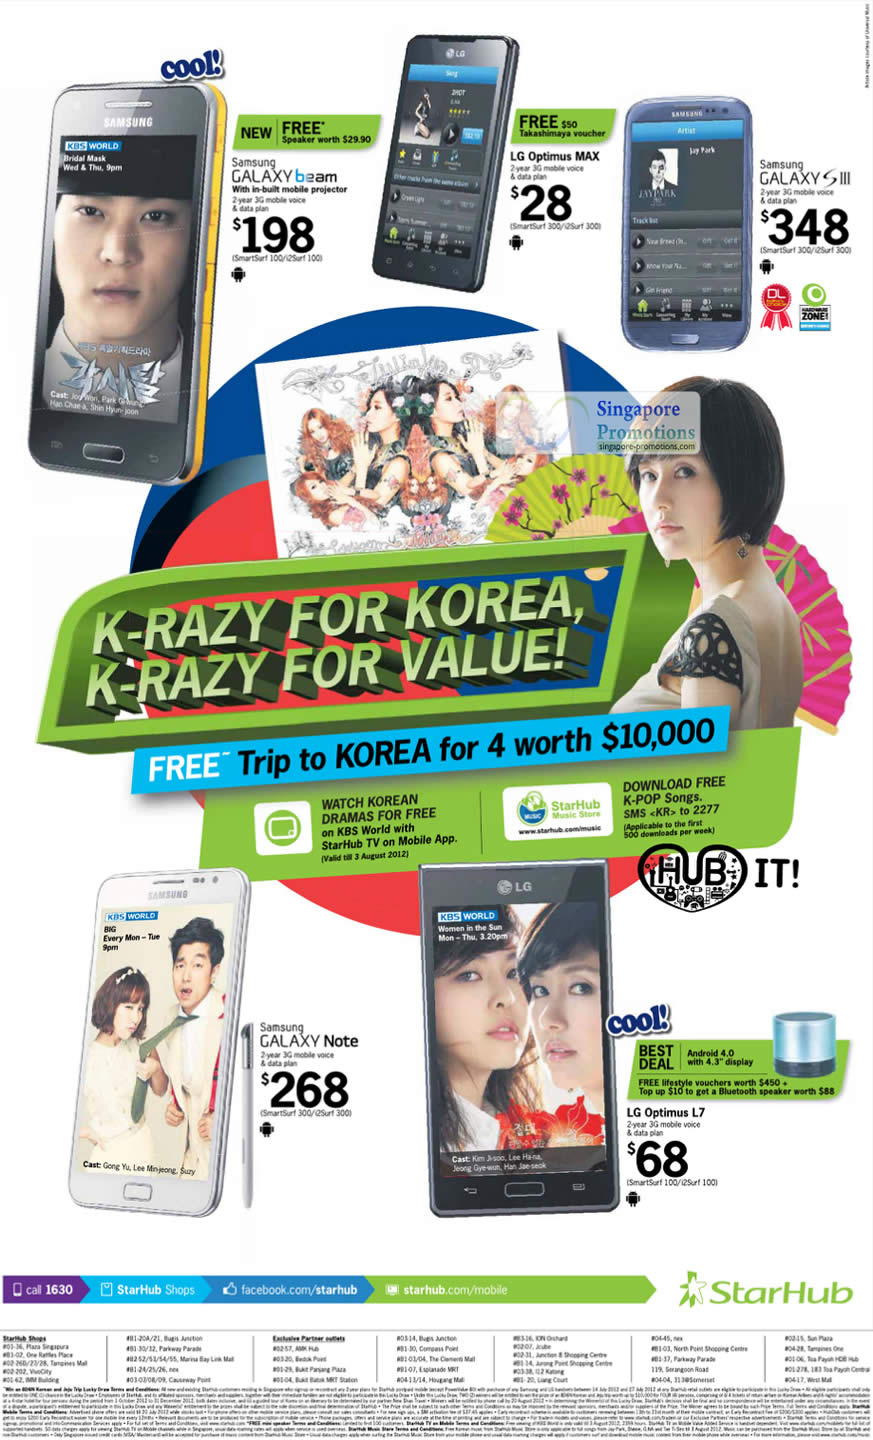 Samsung Galaxy Beam, Samsung Galaxy S III, Samsung Galaxy Note, LG Optimus MAX, LG Optimus L7